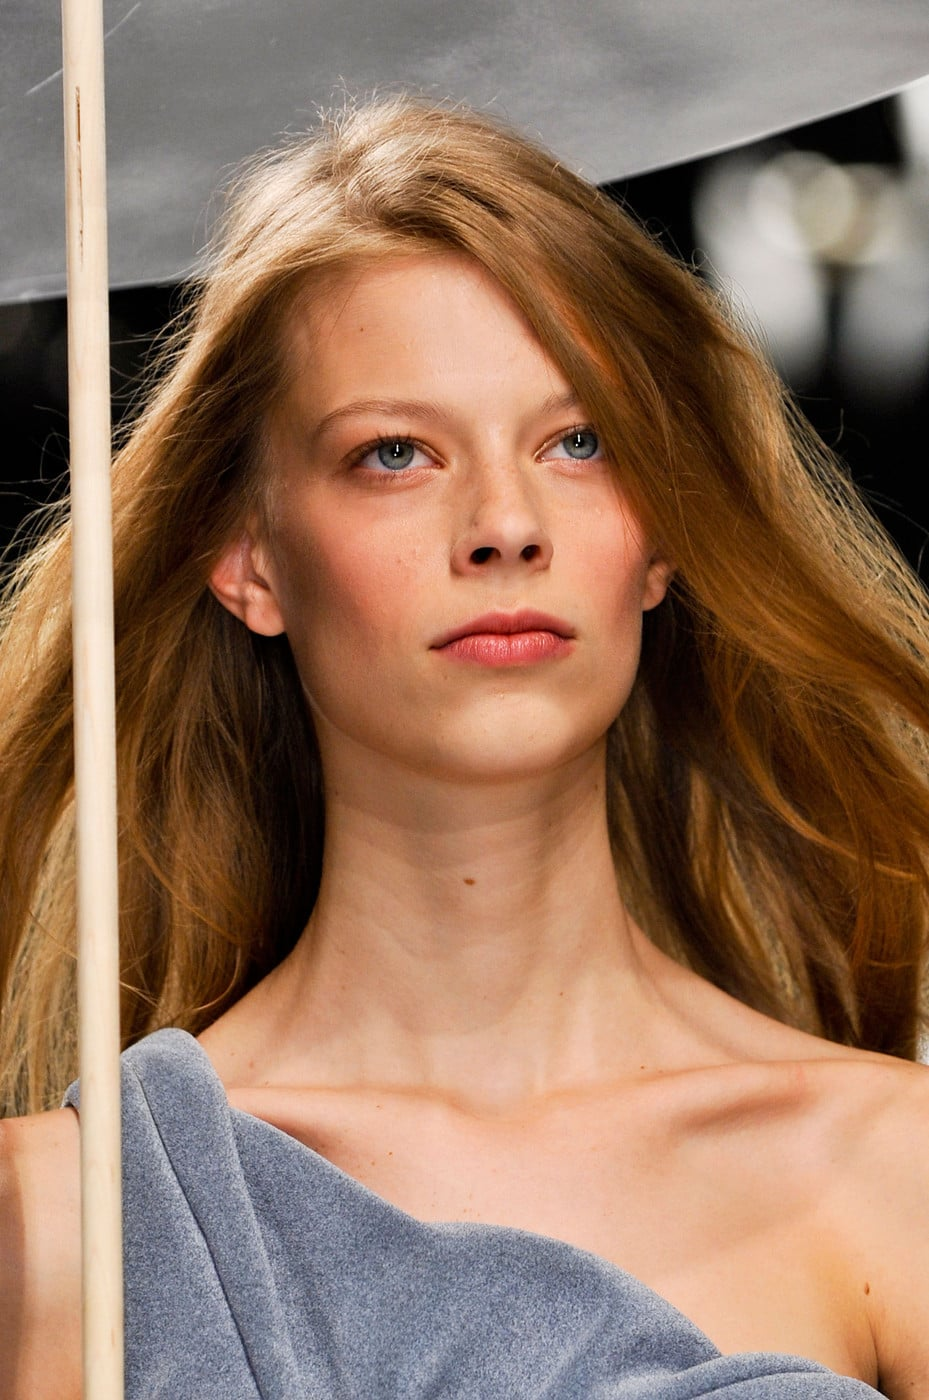 The 27-year old daughter of father (?) and mother(?), 179 cm tall Lexi Boling in 2018 photo